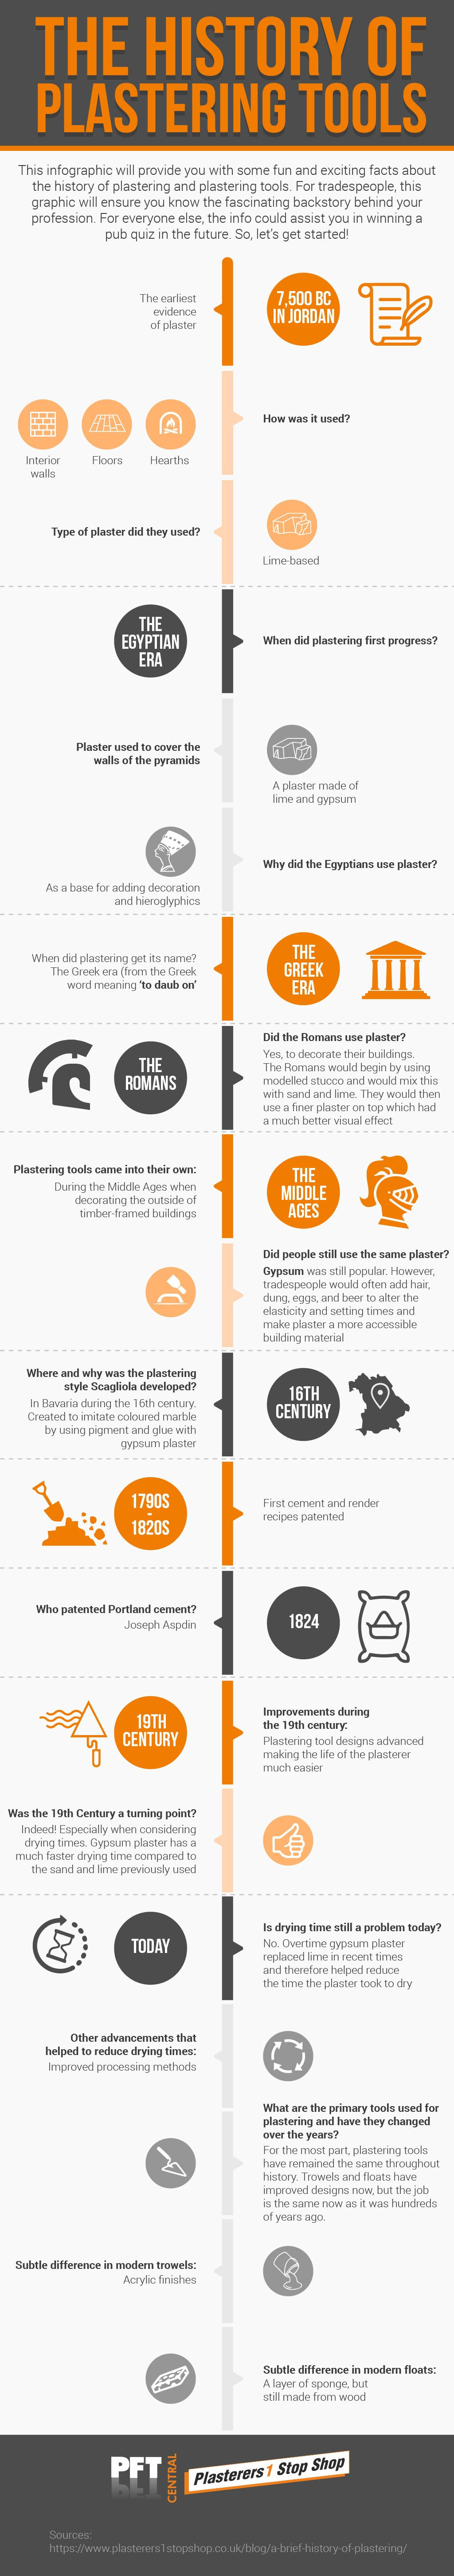 Plasterers One Stop Shop >> The History Of Plastering Tools Plasterers 1 Stop Shop Medium